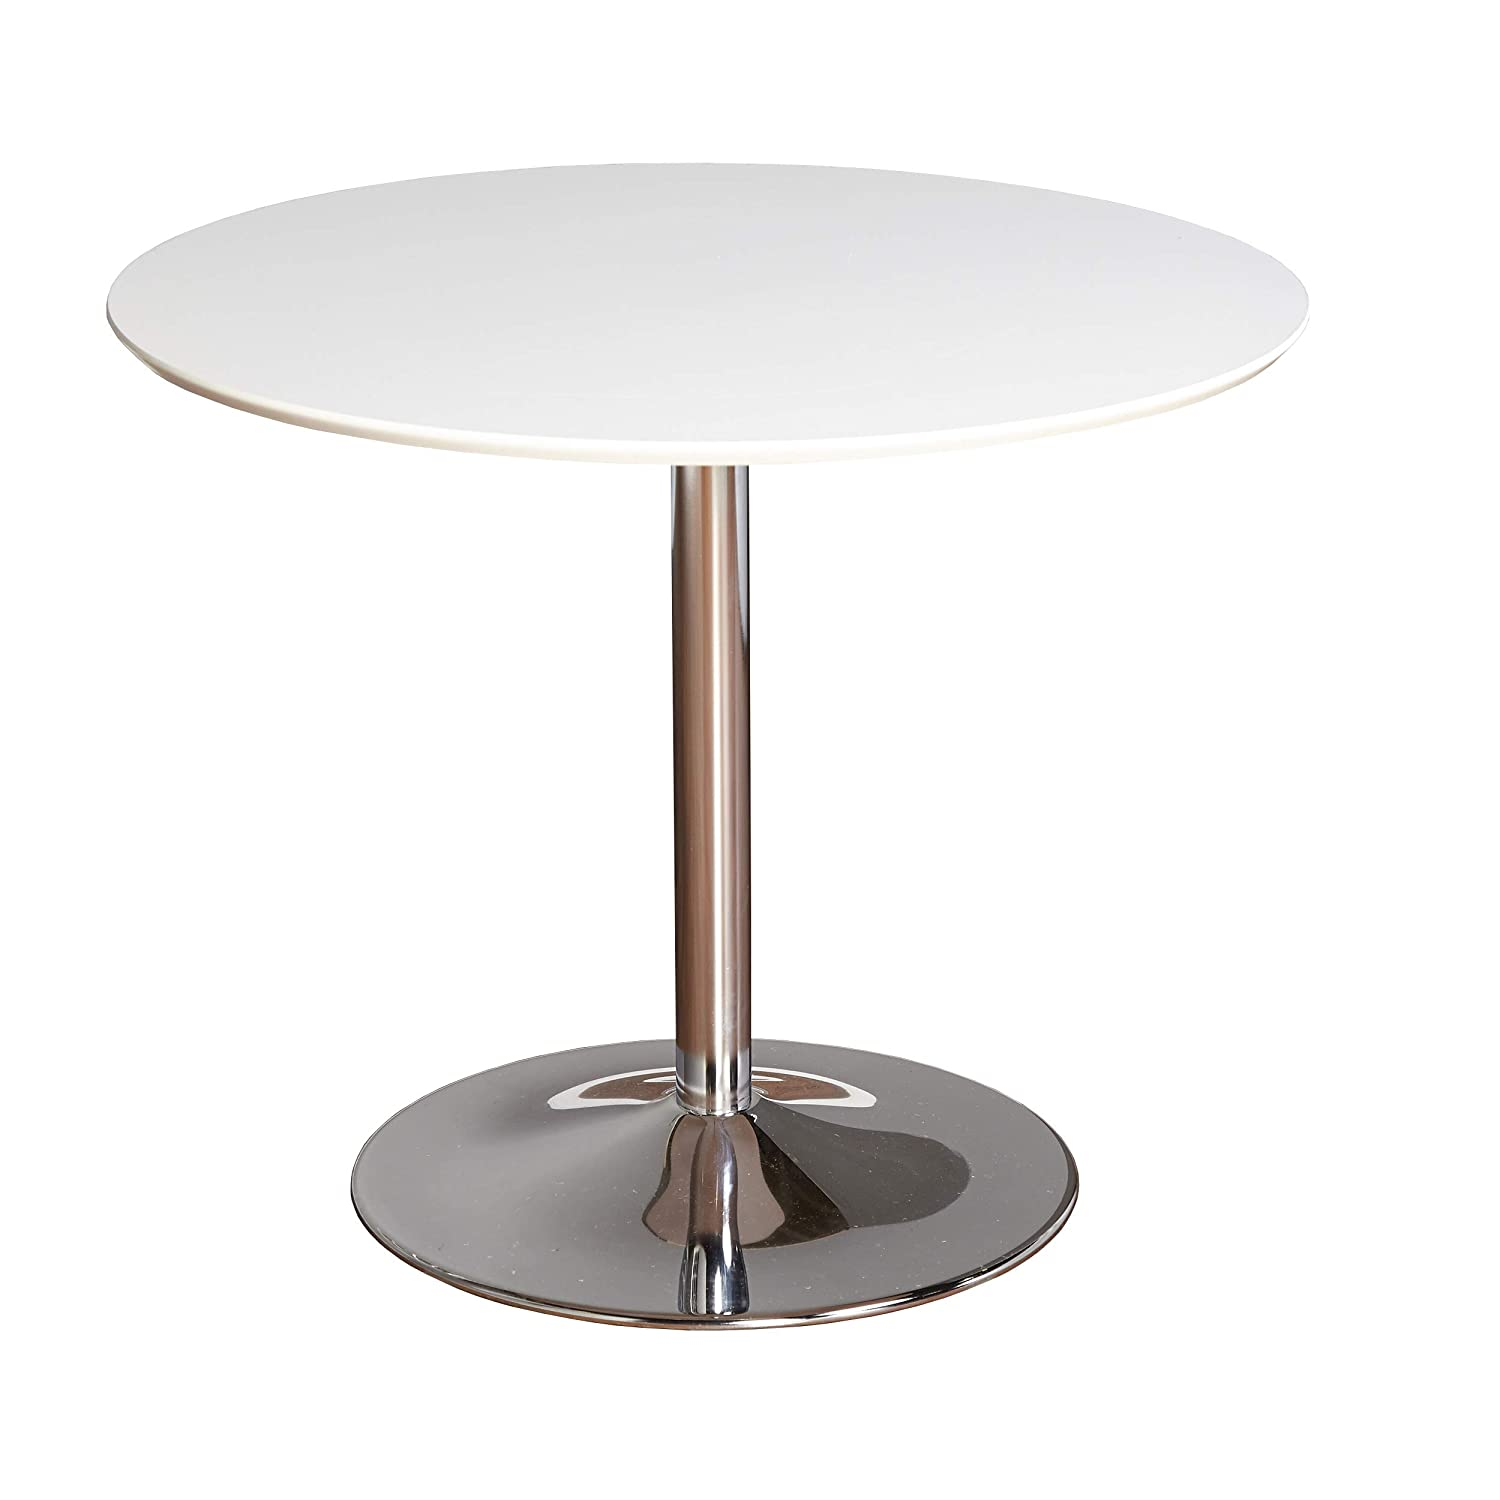 "TMS 89017WHT PISA Modern Retro Round Dining Table, 35.4"" W, White"